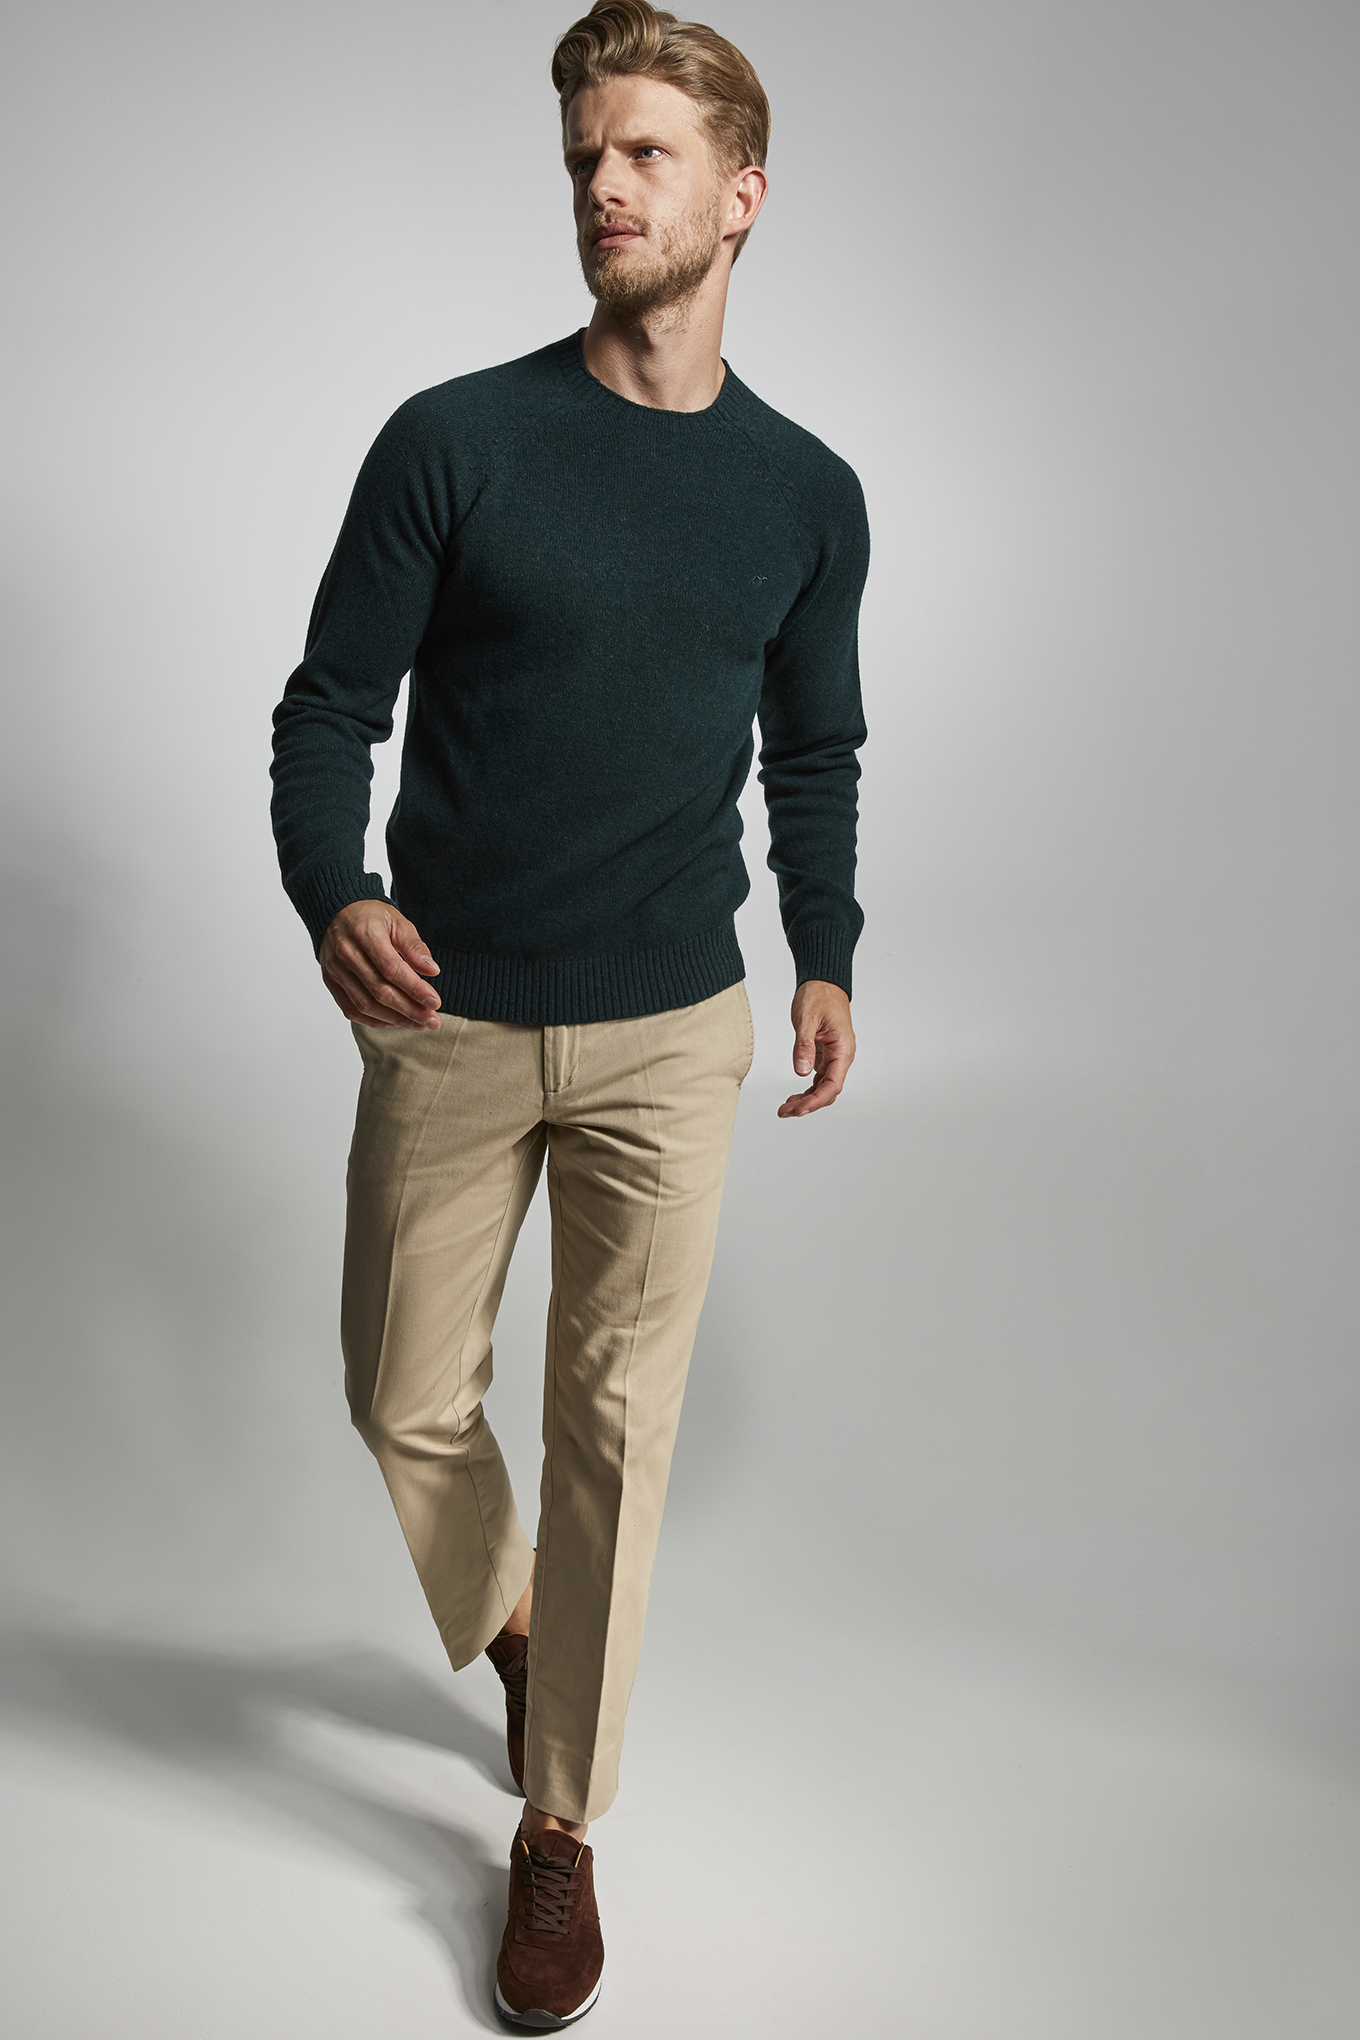 Sweater Dark Green Sport Man